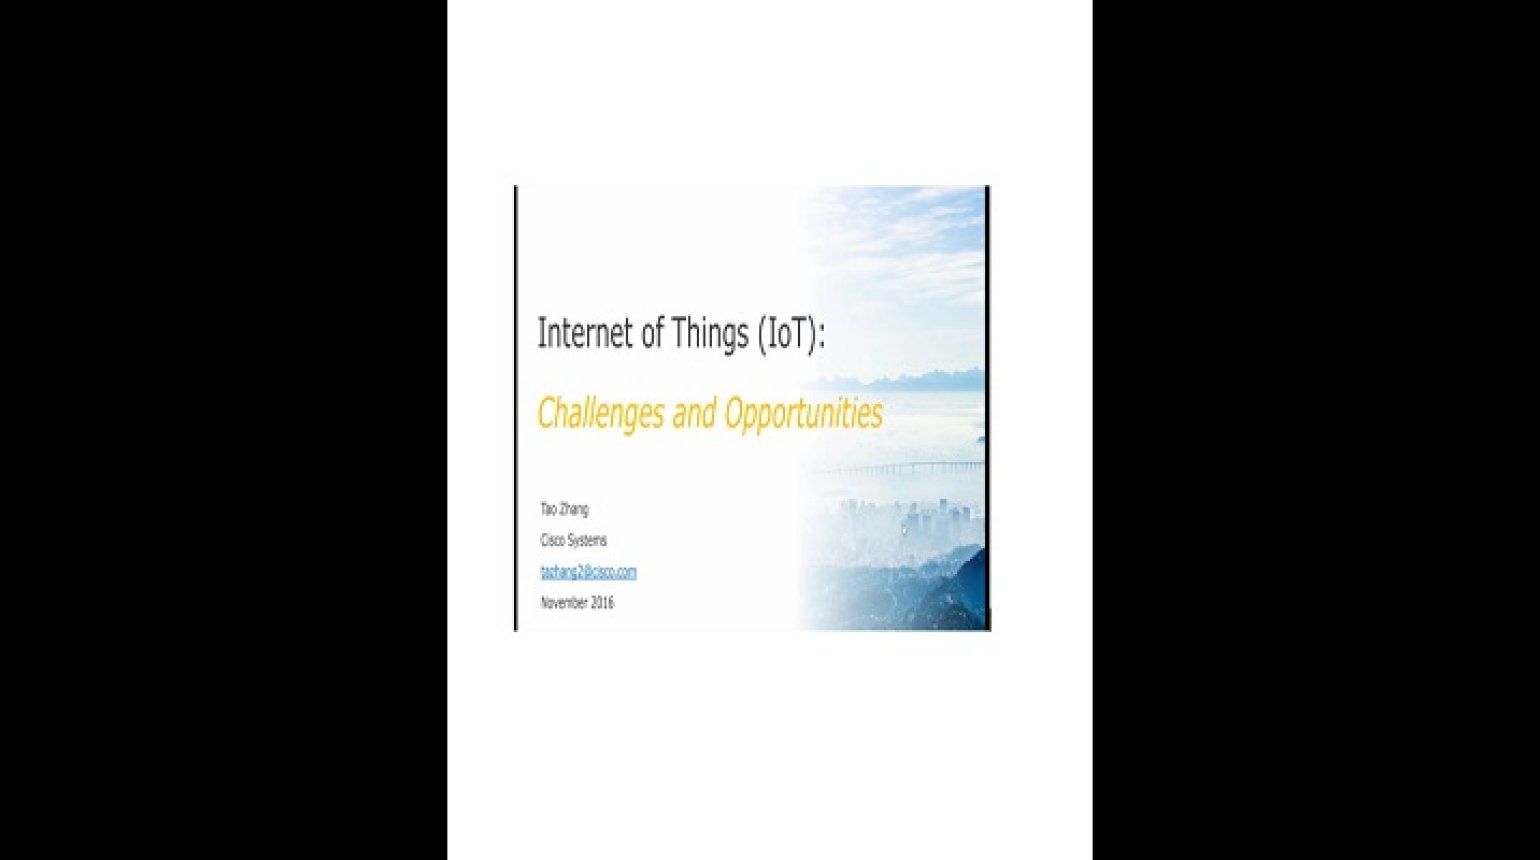 Video - Internet of Things (IoT): Challenges and Opportunities